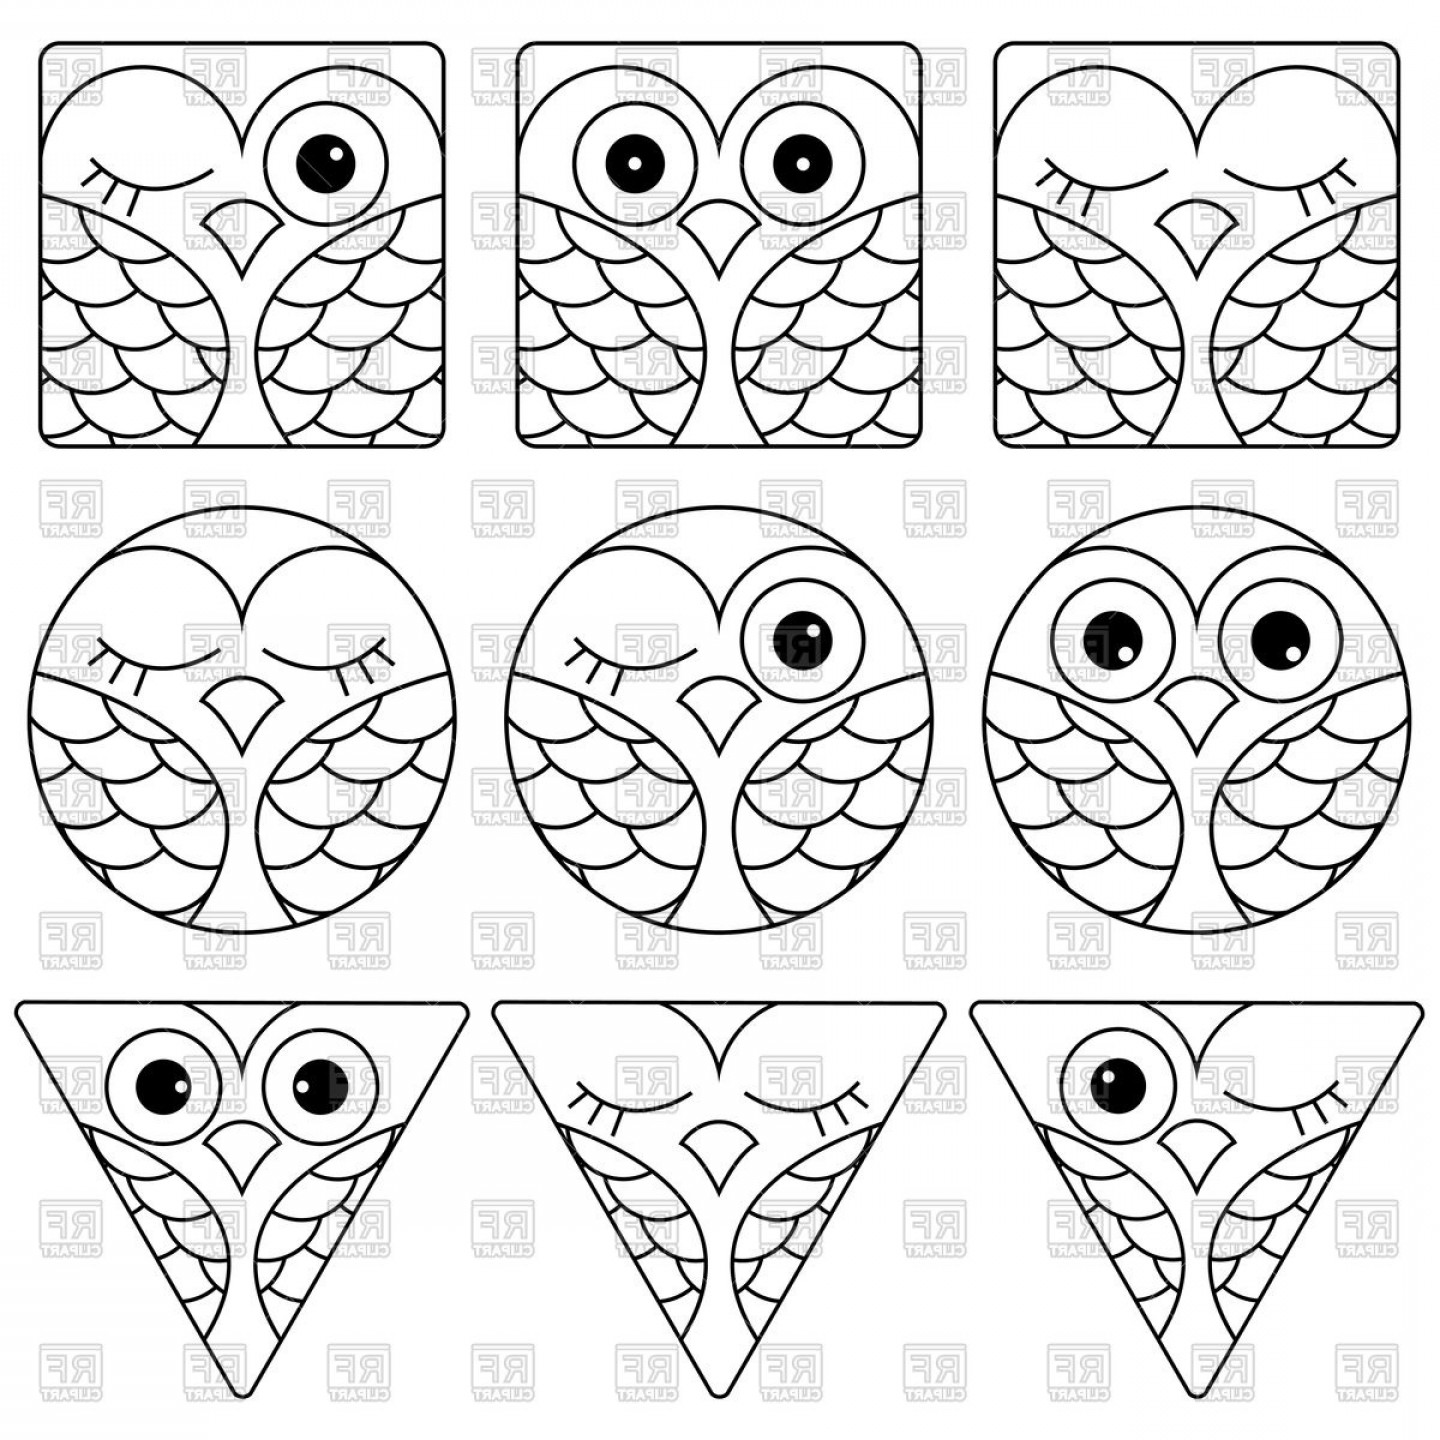 Funny Black And White Vector: Set Of Funny Black And White Owl Faces Vector Clipart